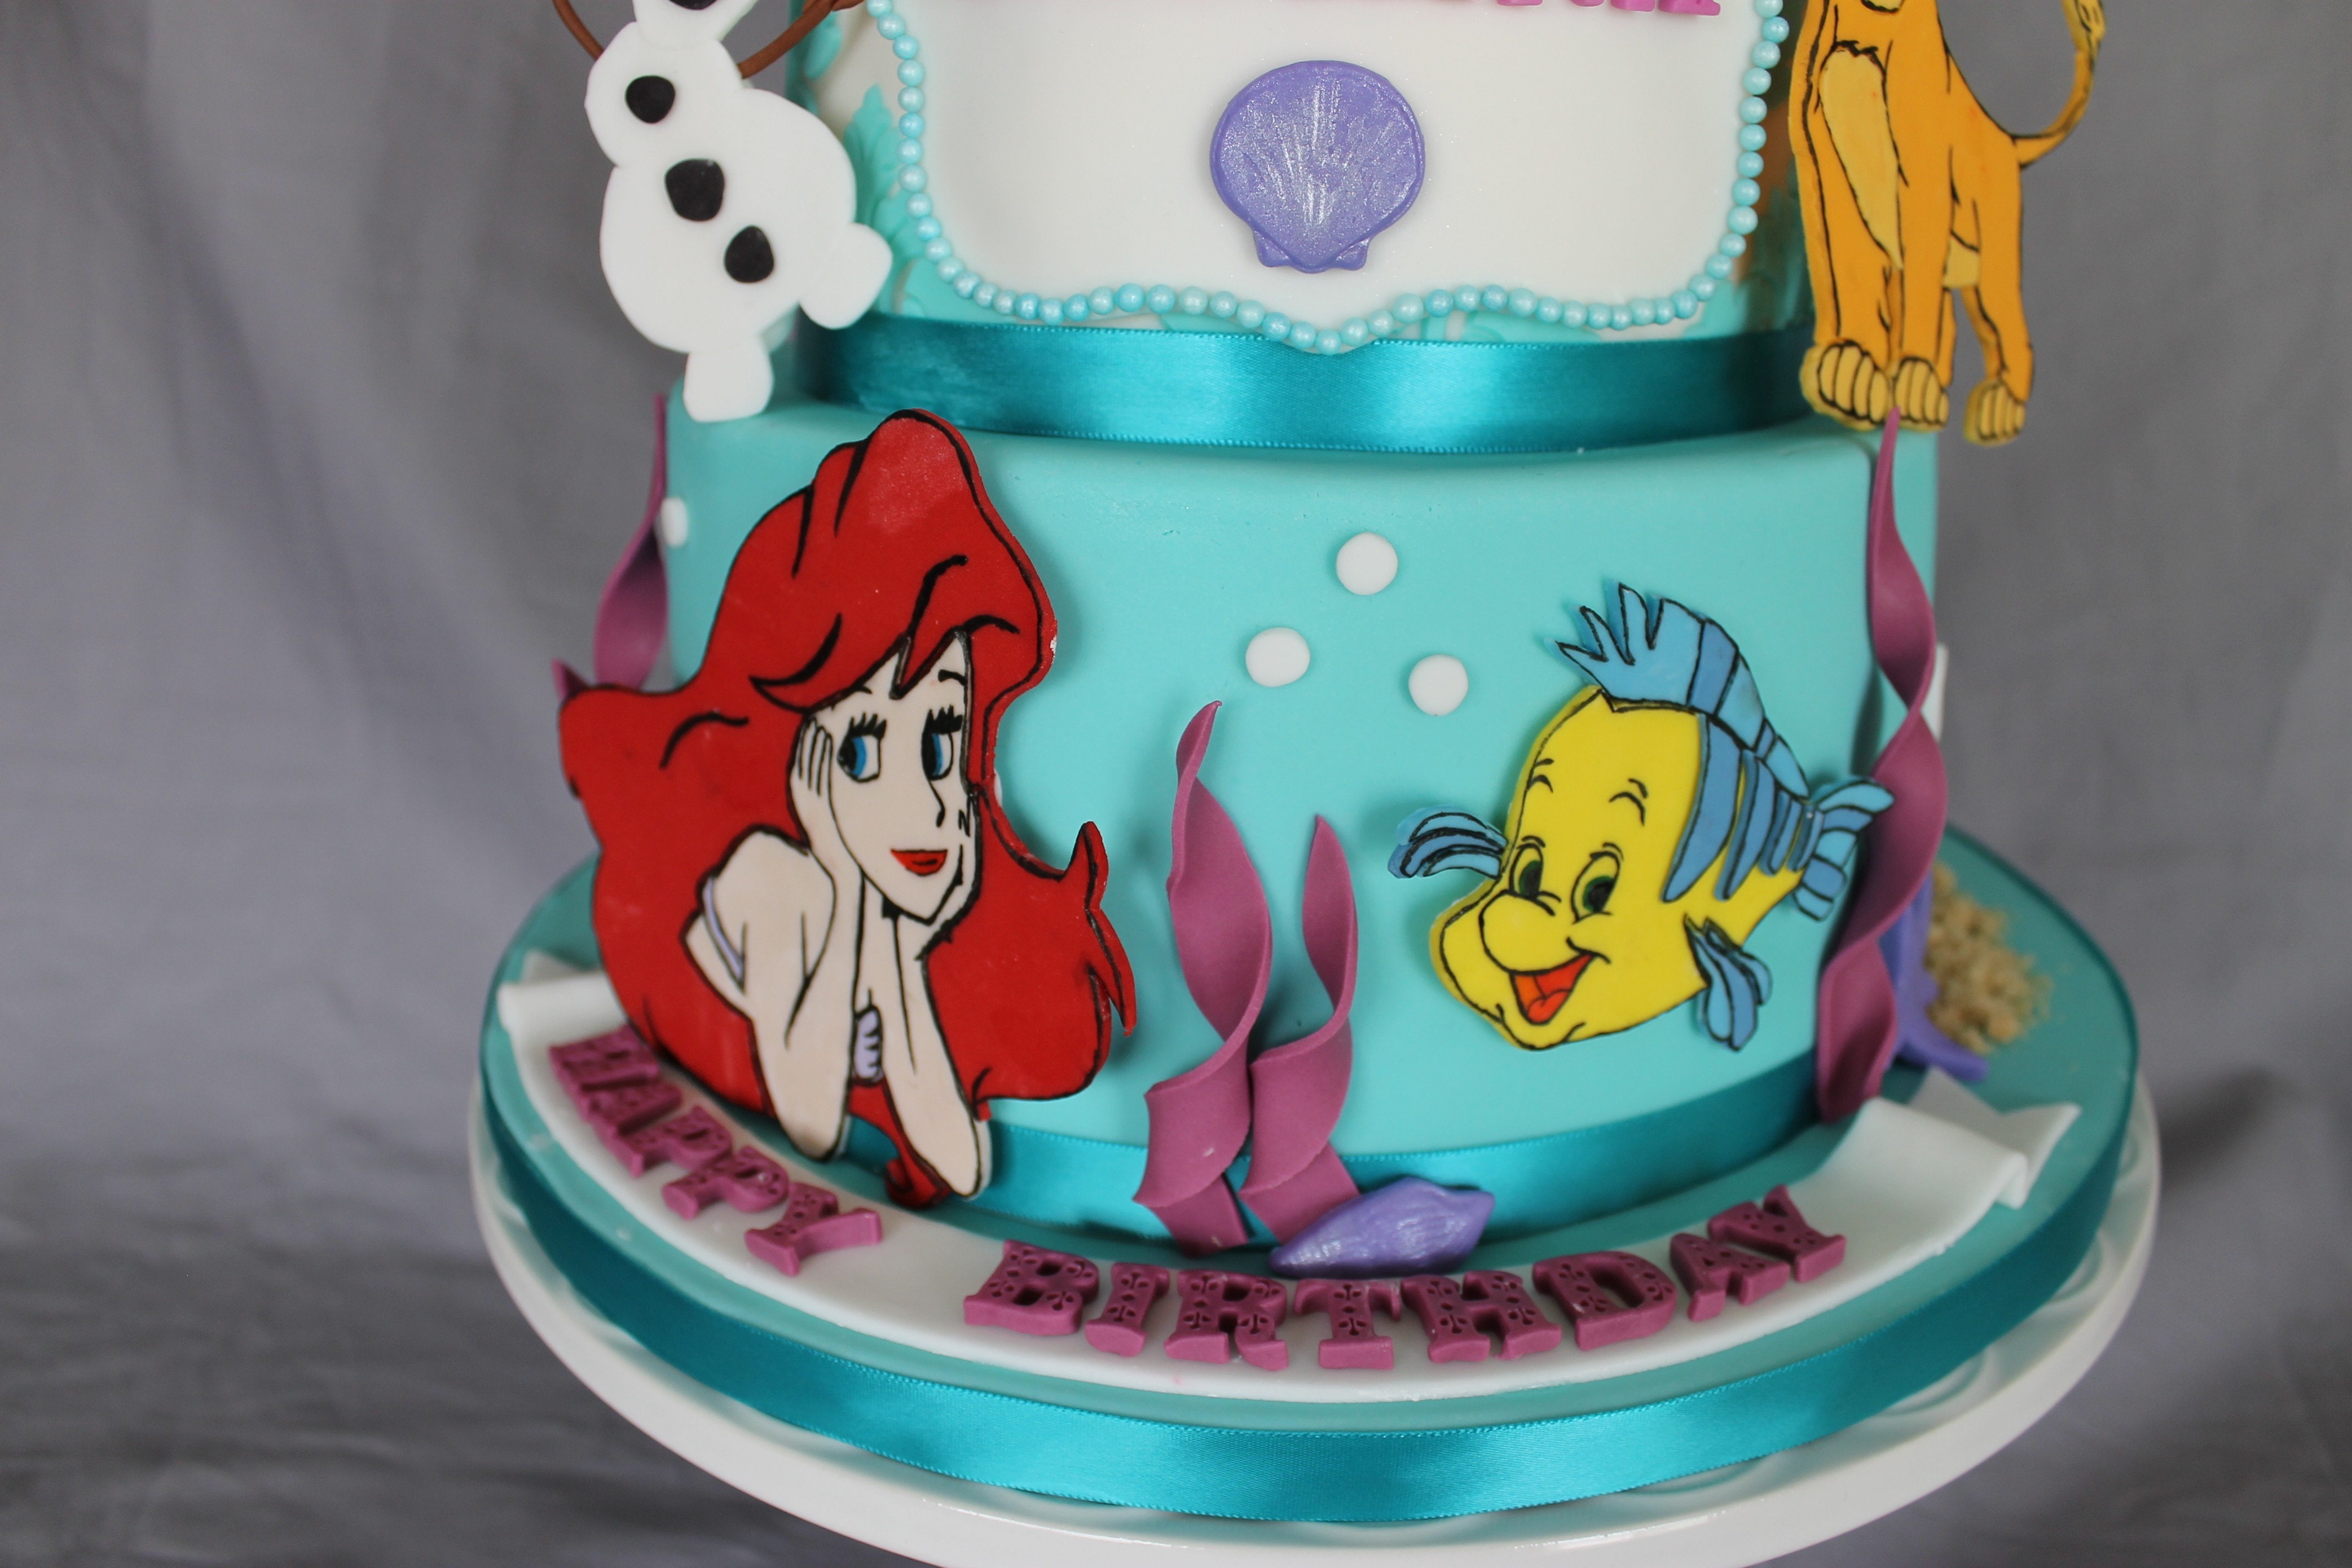 Birthday Cake Images Disney : Disney Themed Birthday Cake - CakeCentral.com